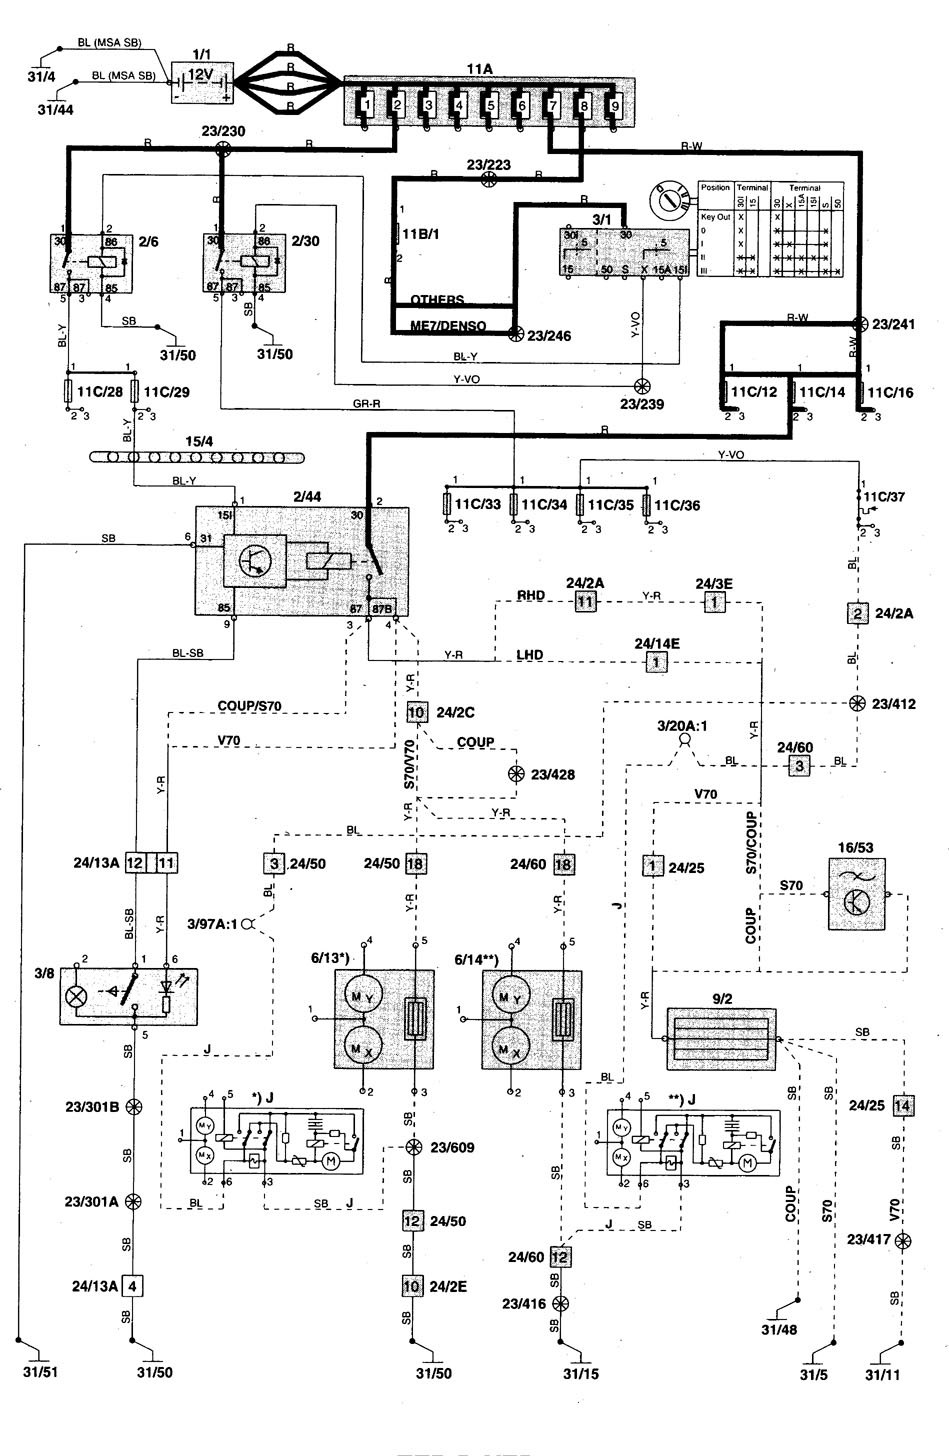 volvo diagram wiring 20579815 information of wiring diagram u2022 rh infowiring today 1998 Volvo S70 Wiring-Diagram Volvo VNL Truck Wiring Diagrams